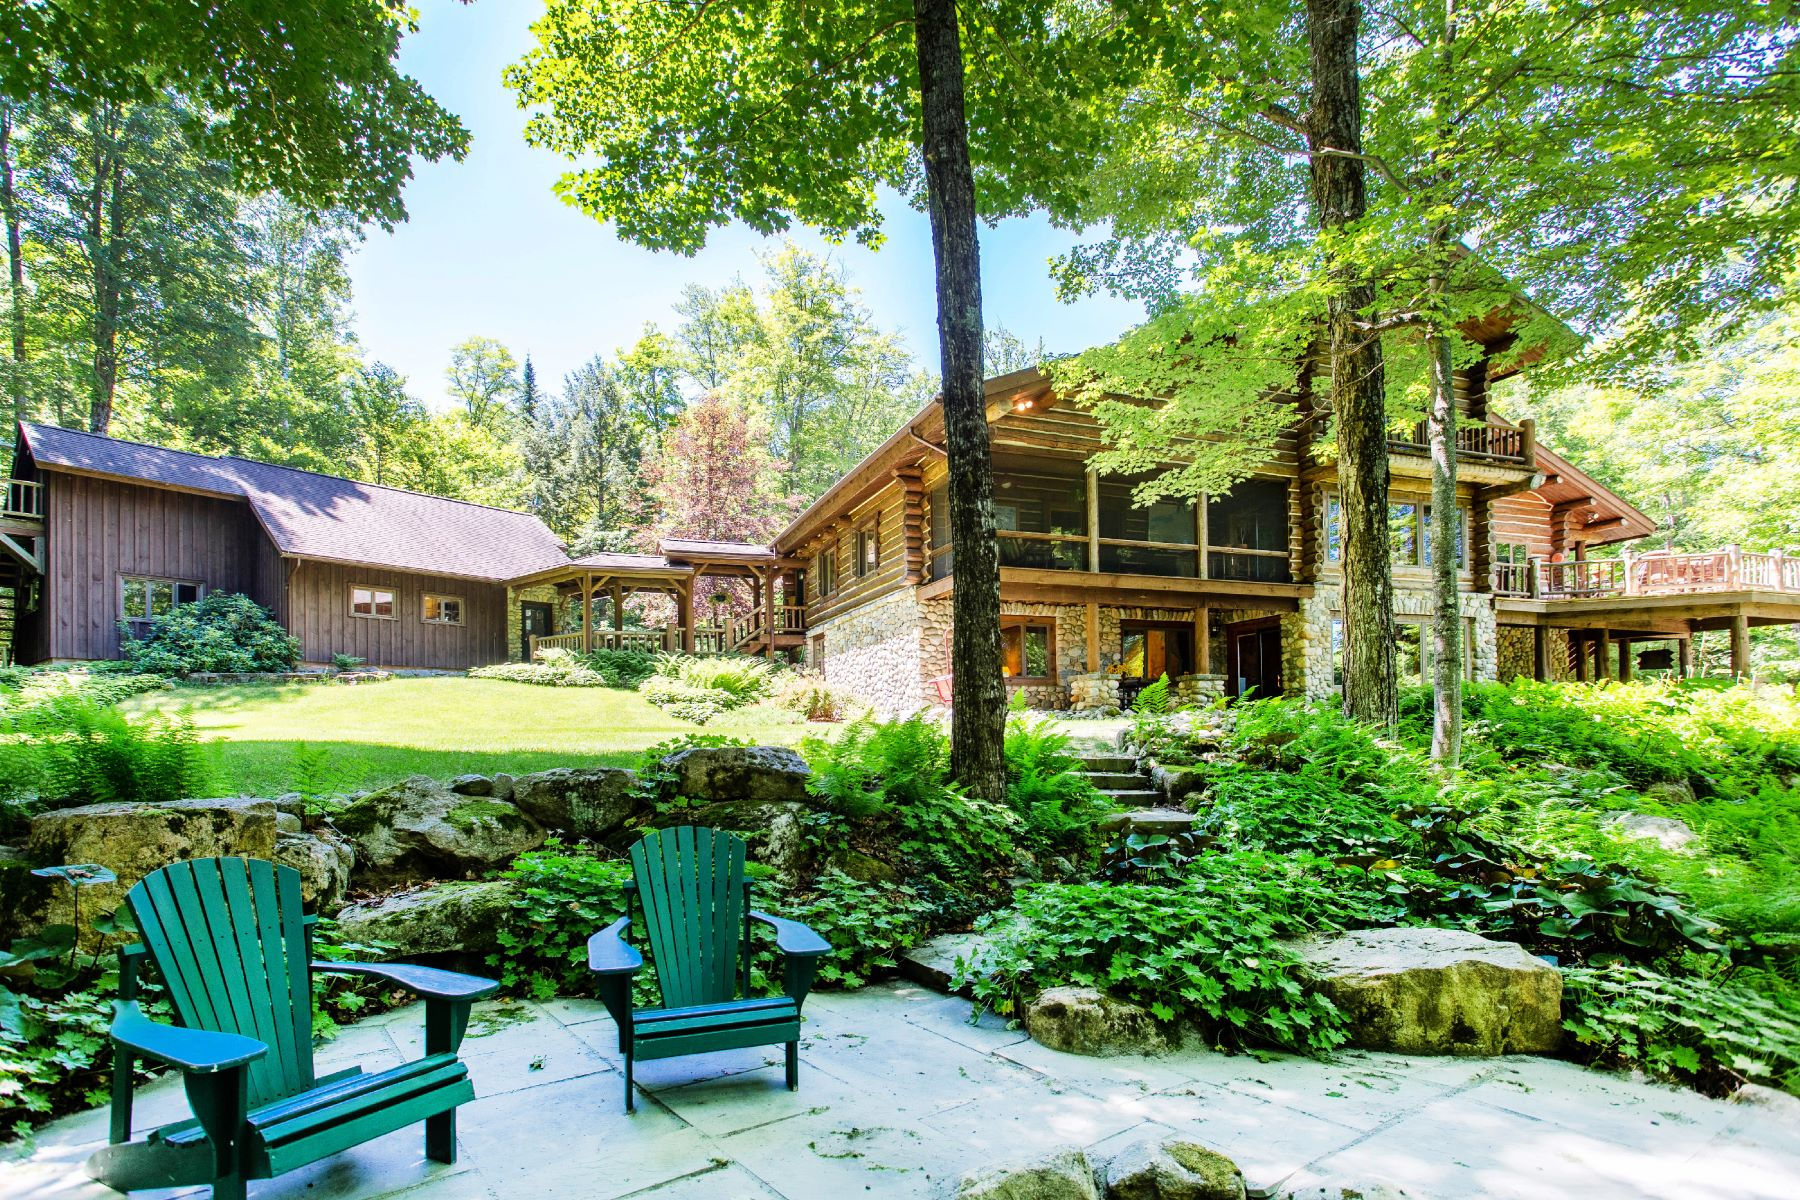 Single Family Homes for Sale at One-of-a-kind Adirondack Retreat 73 Krissica Way Schroon Lake, New York 12870 United States